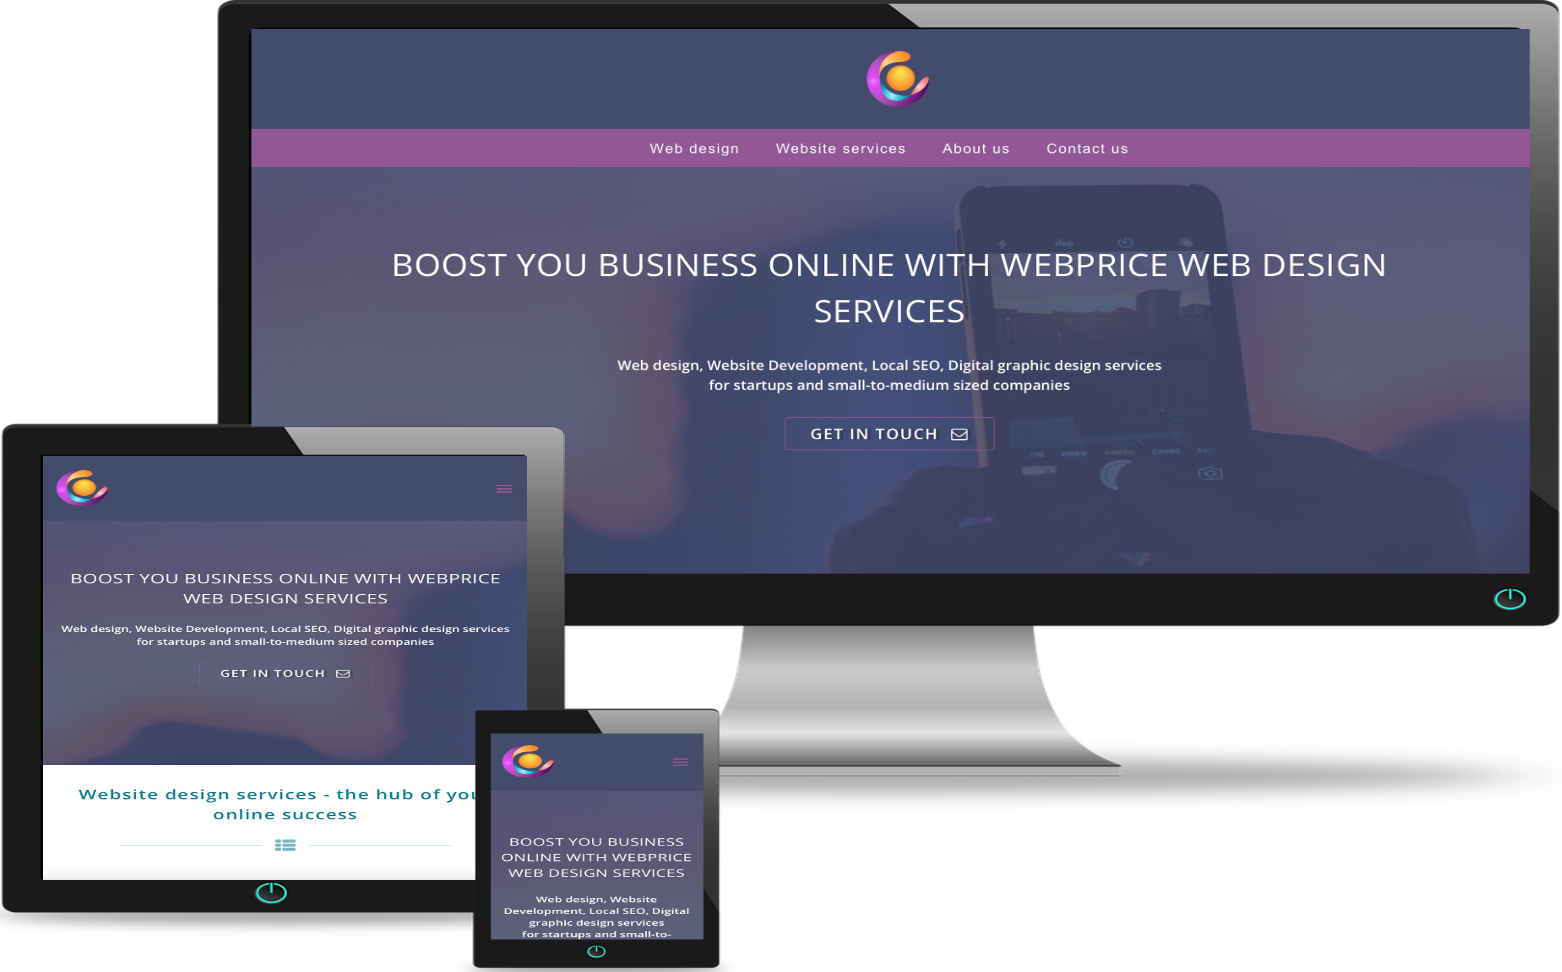 Redesign existing website services